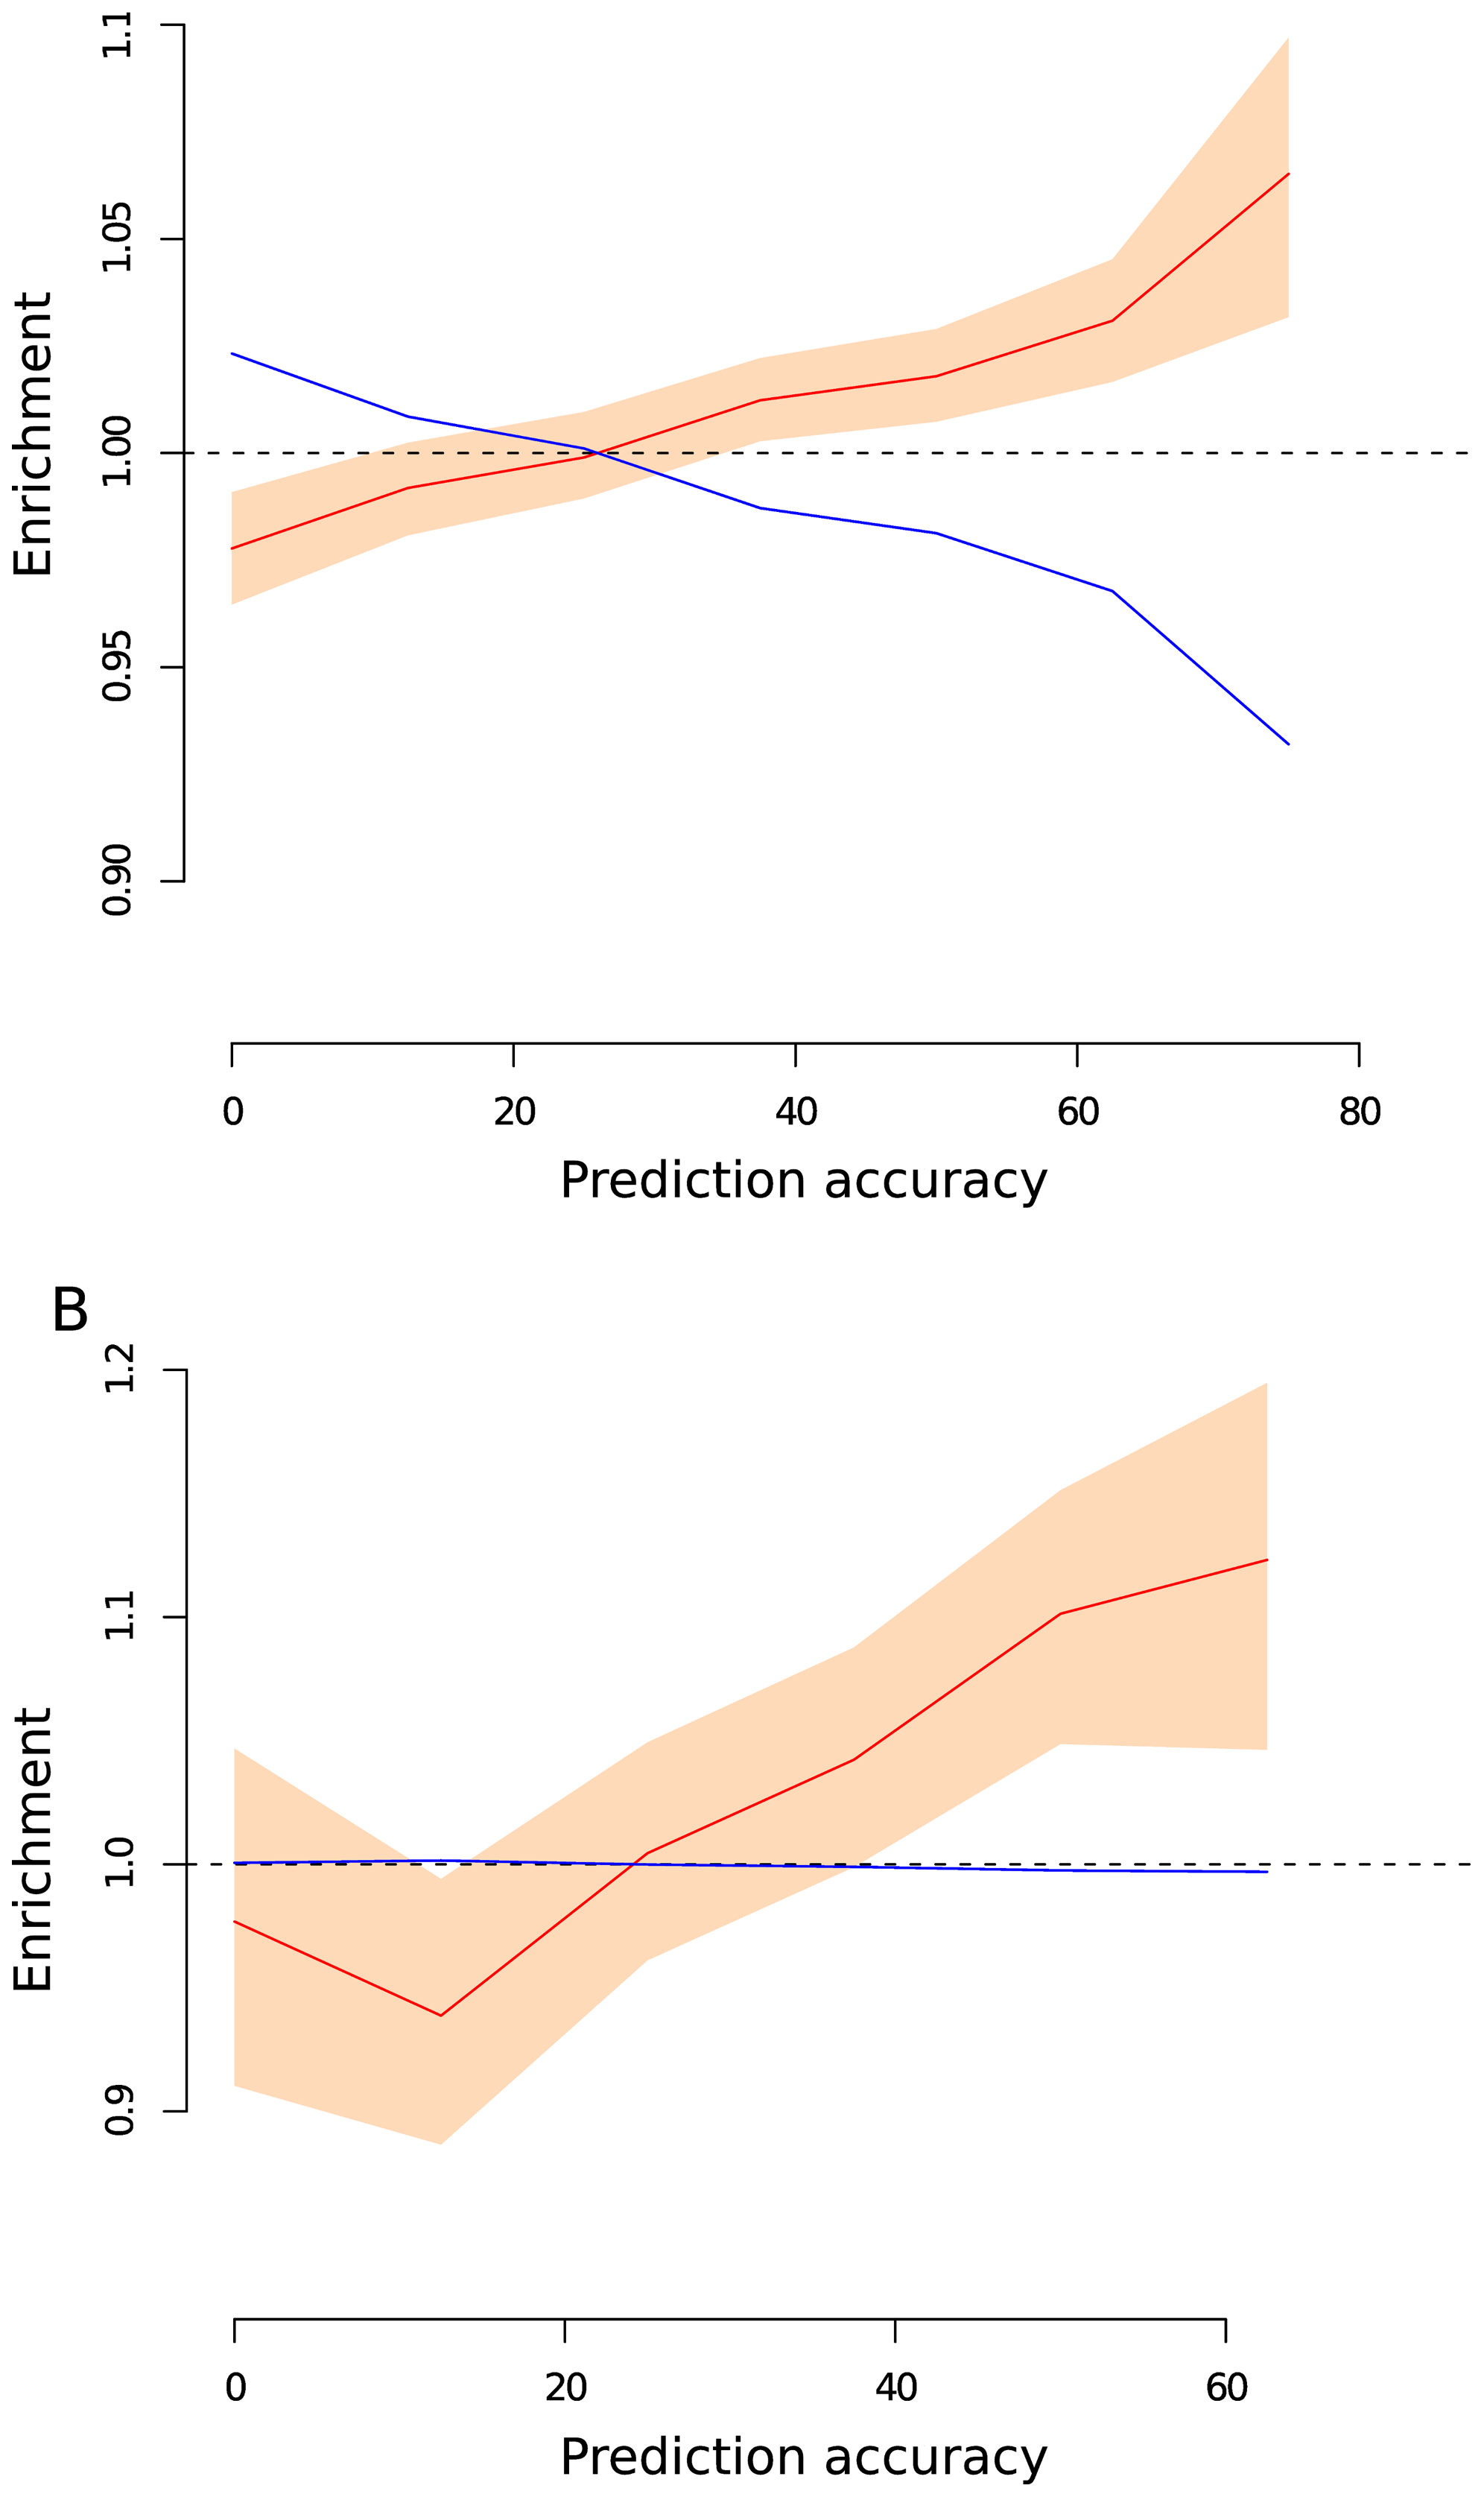 Enrichment of SNPs for different values of prediction accuracy.